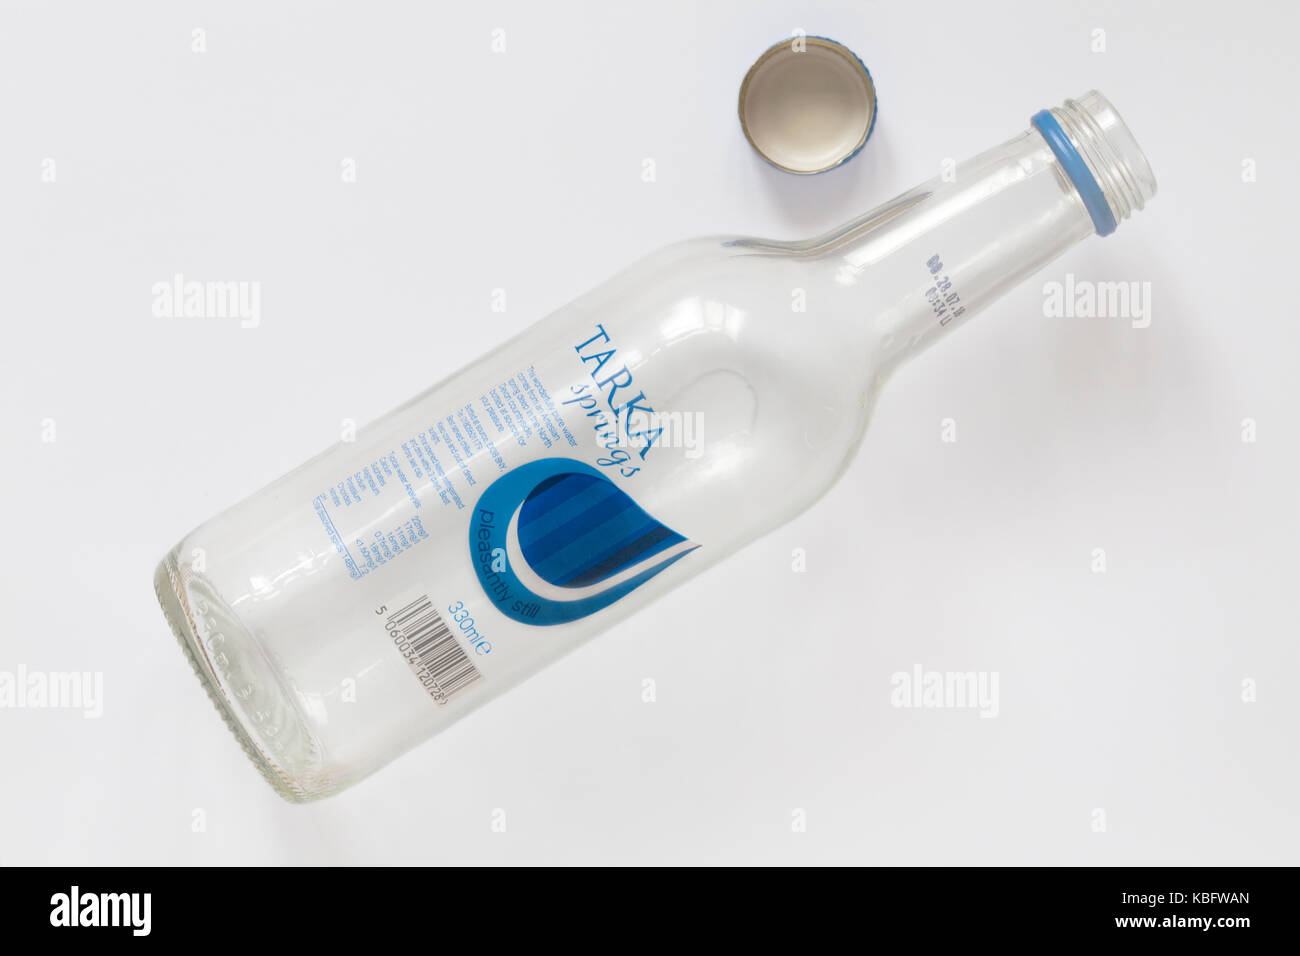 Empty bottle of Tarka Springs pleasantly still water isolated on white background - Stock Image